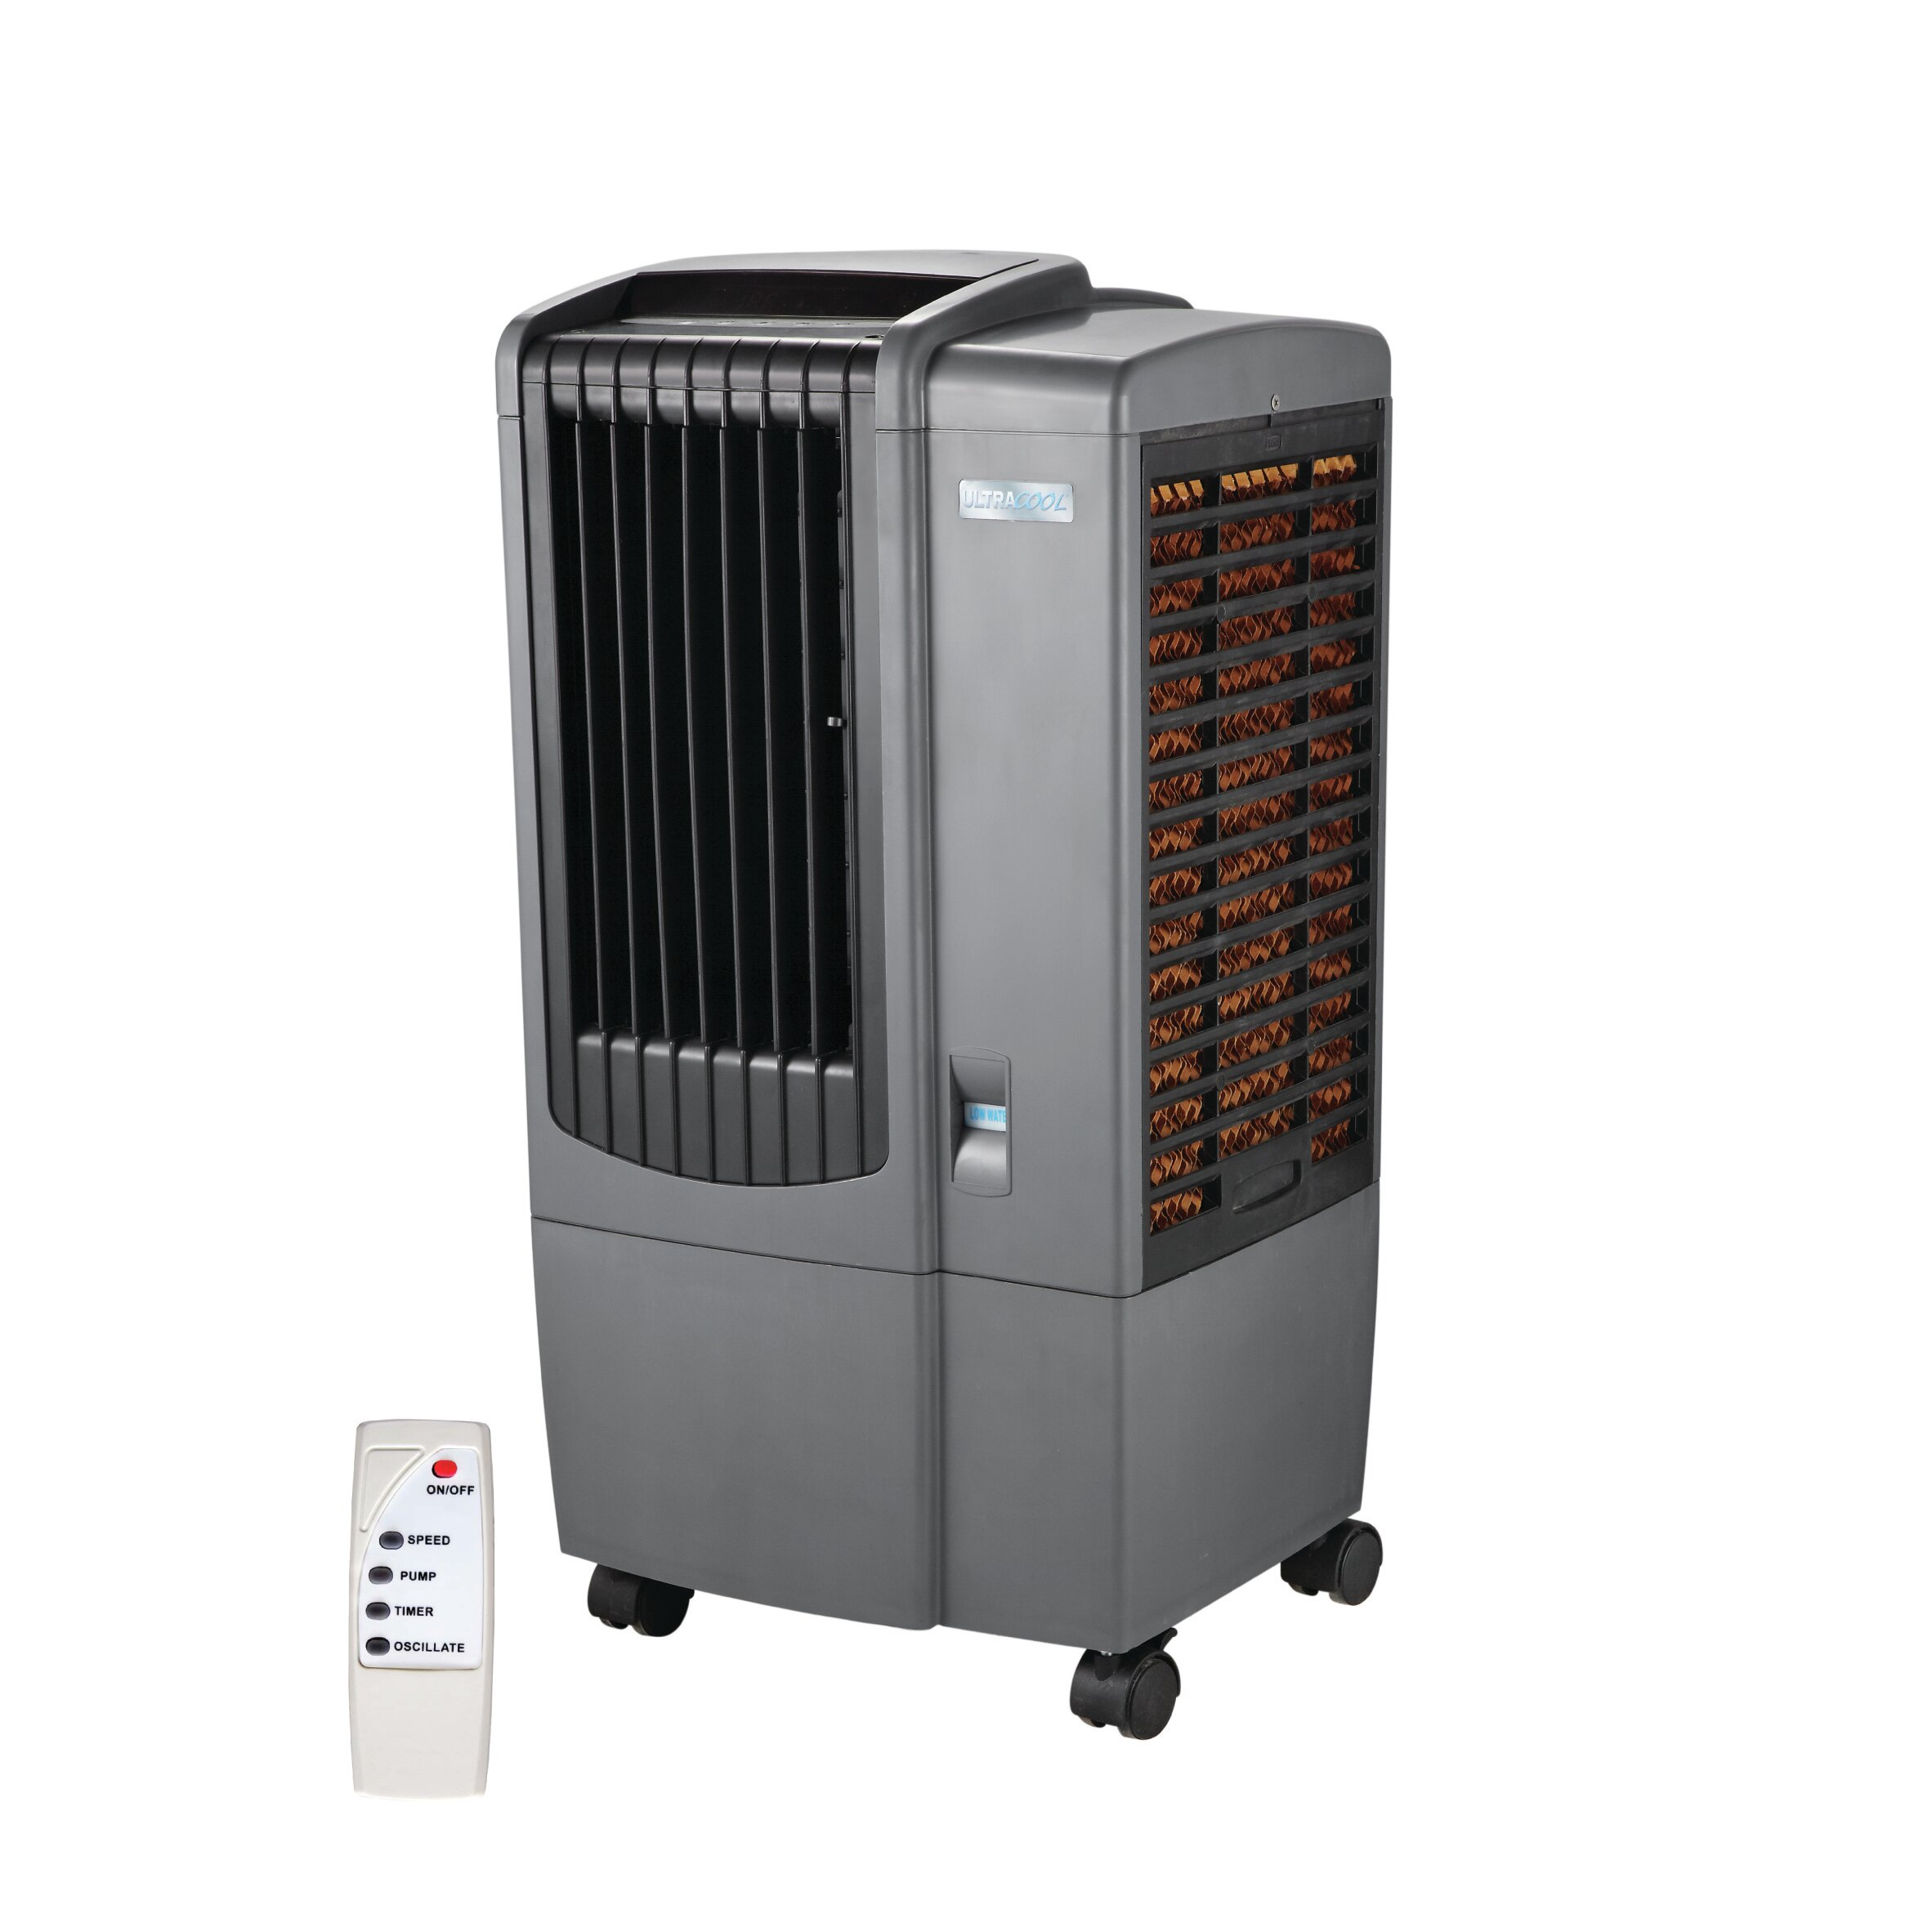 Portable Evaporative Cooler with Remote by UltraCool #6B3924